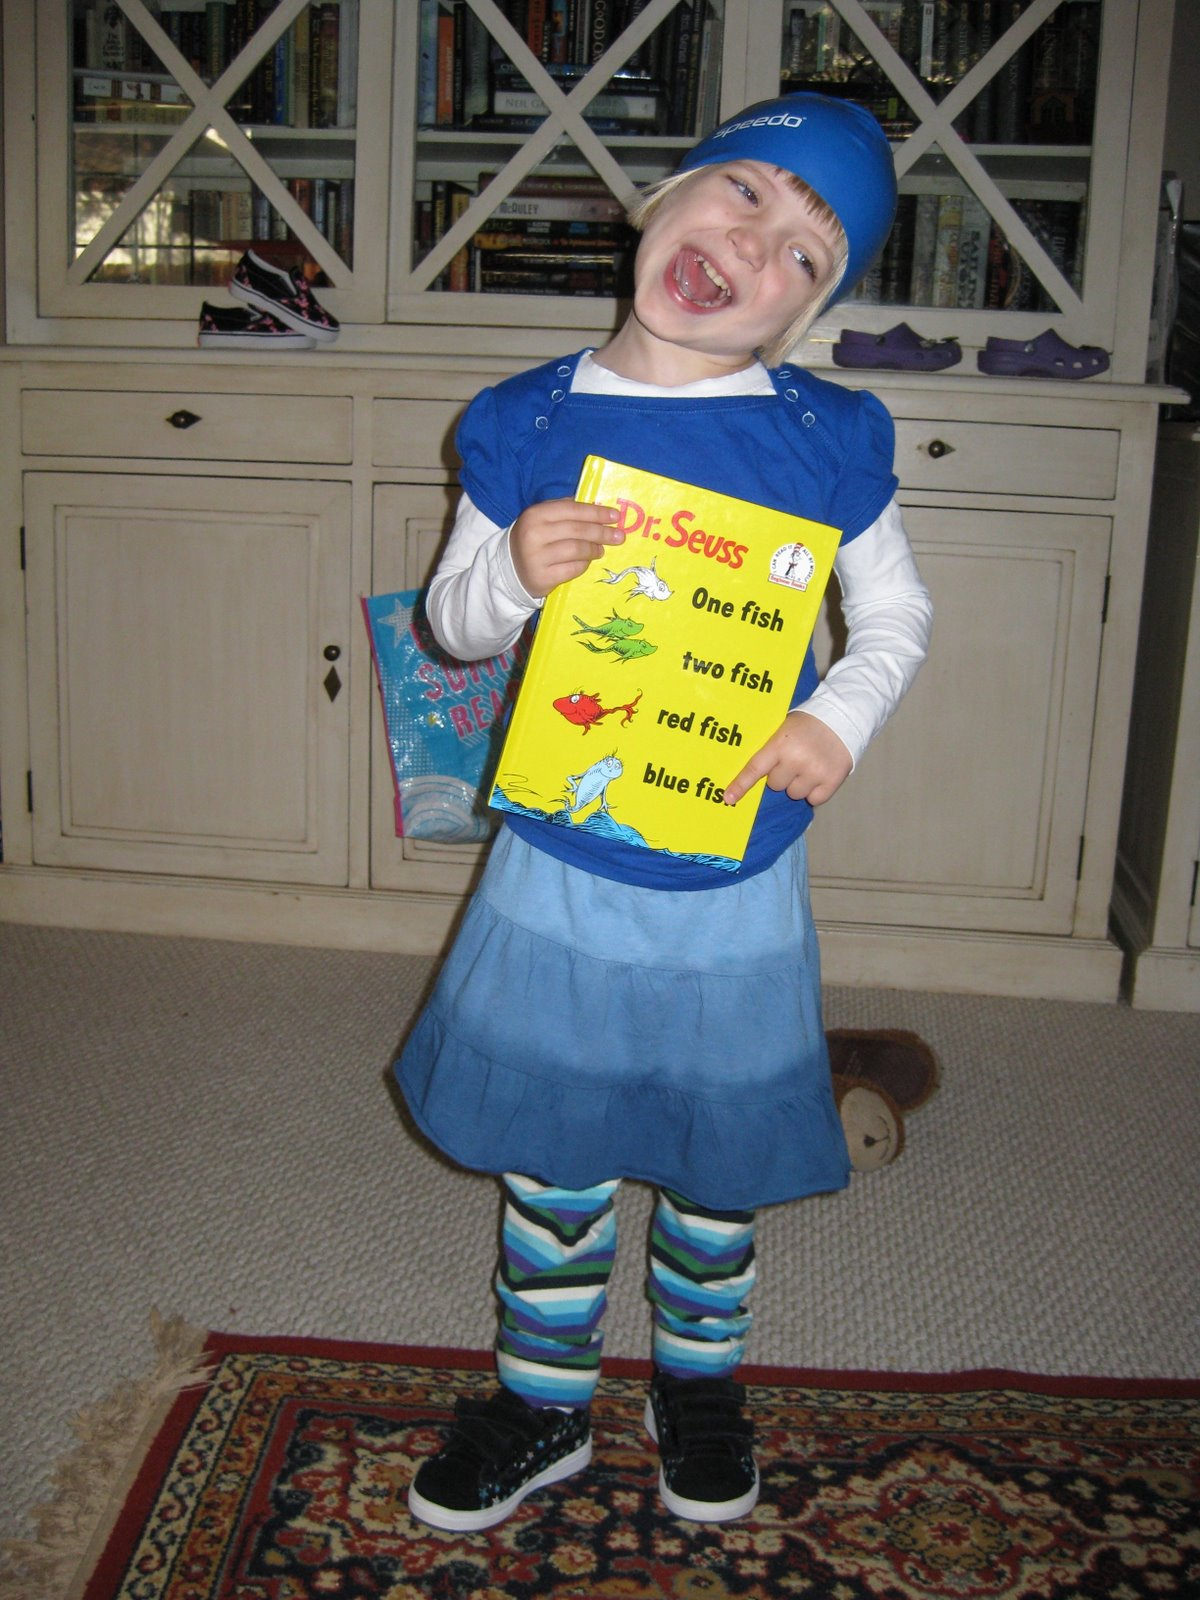 Dr seuss costume ideas for one fish two fish for One fish two fish red fish blue fish costume